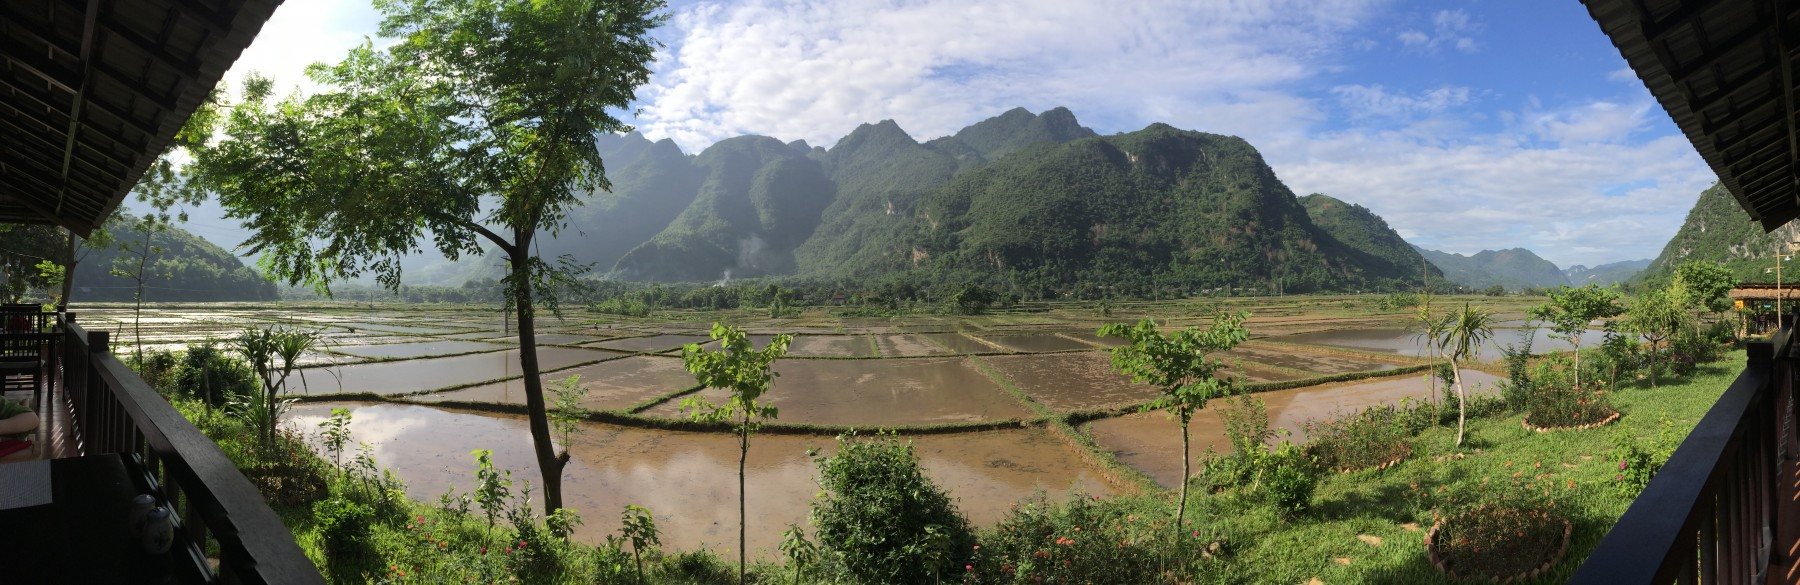 Mai Chau Village in Vietnam